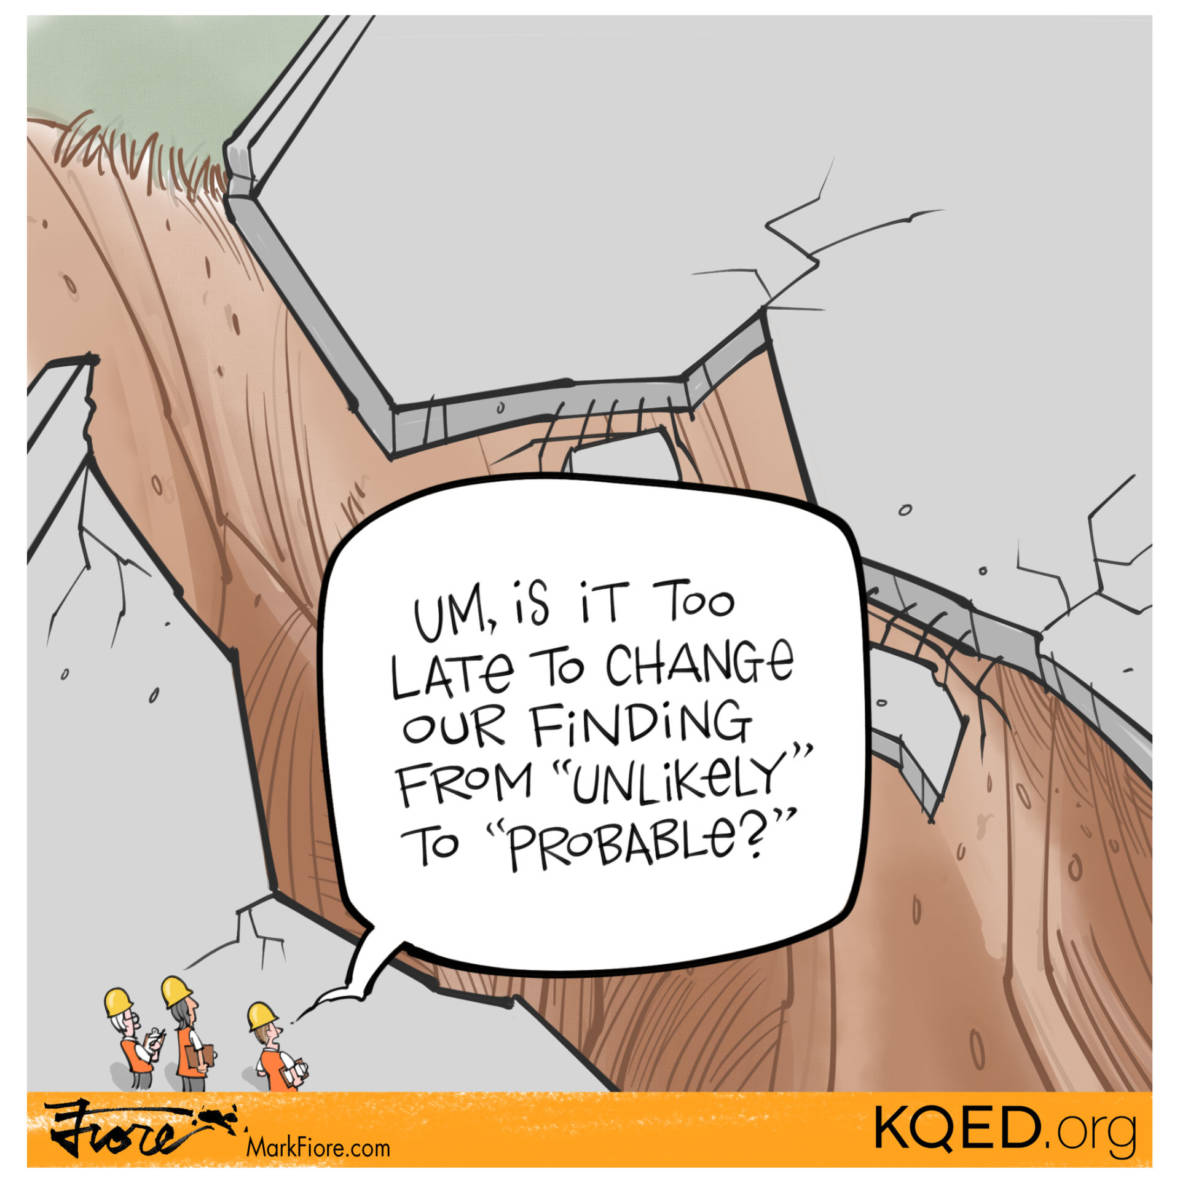 Findings by Mark Fiore